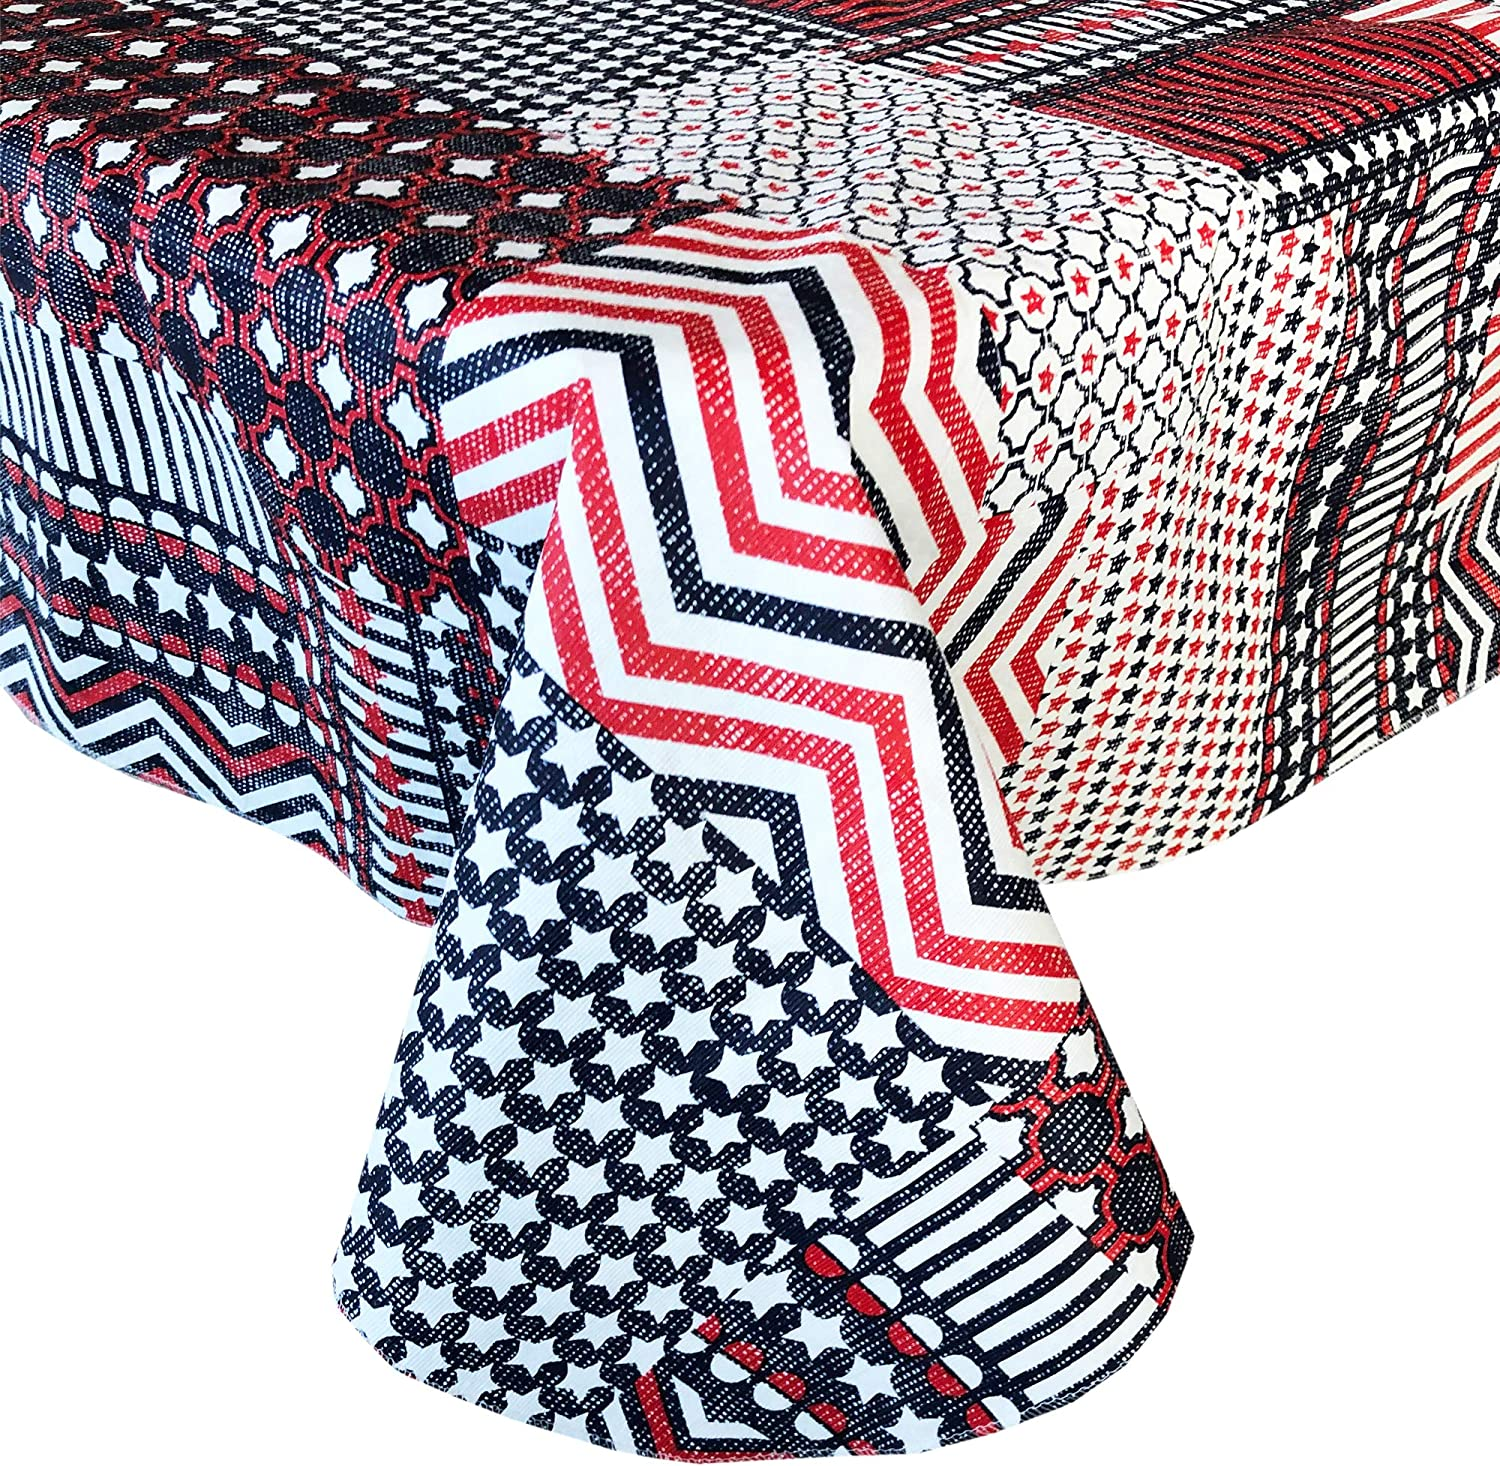 Home Bargains Plus Americana Patchwork Stars and Stripes Print Vinyl Flannel Backed Tablecloth - Red, White and Blue Patriotic Patchwork Indoor/Outdoor Tablecloth - 60 Round